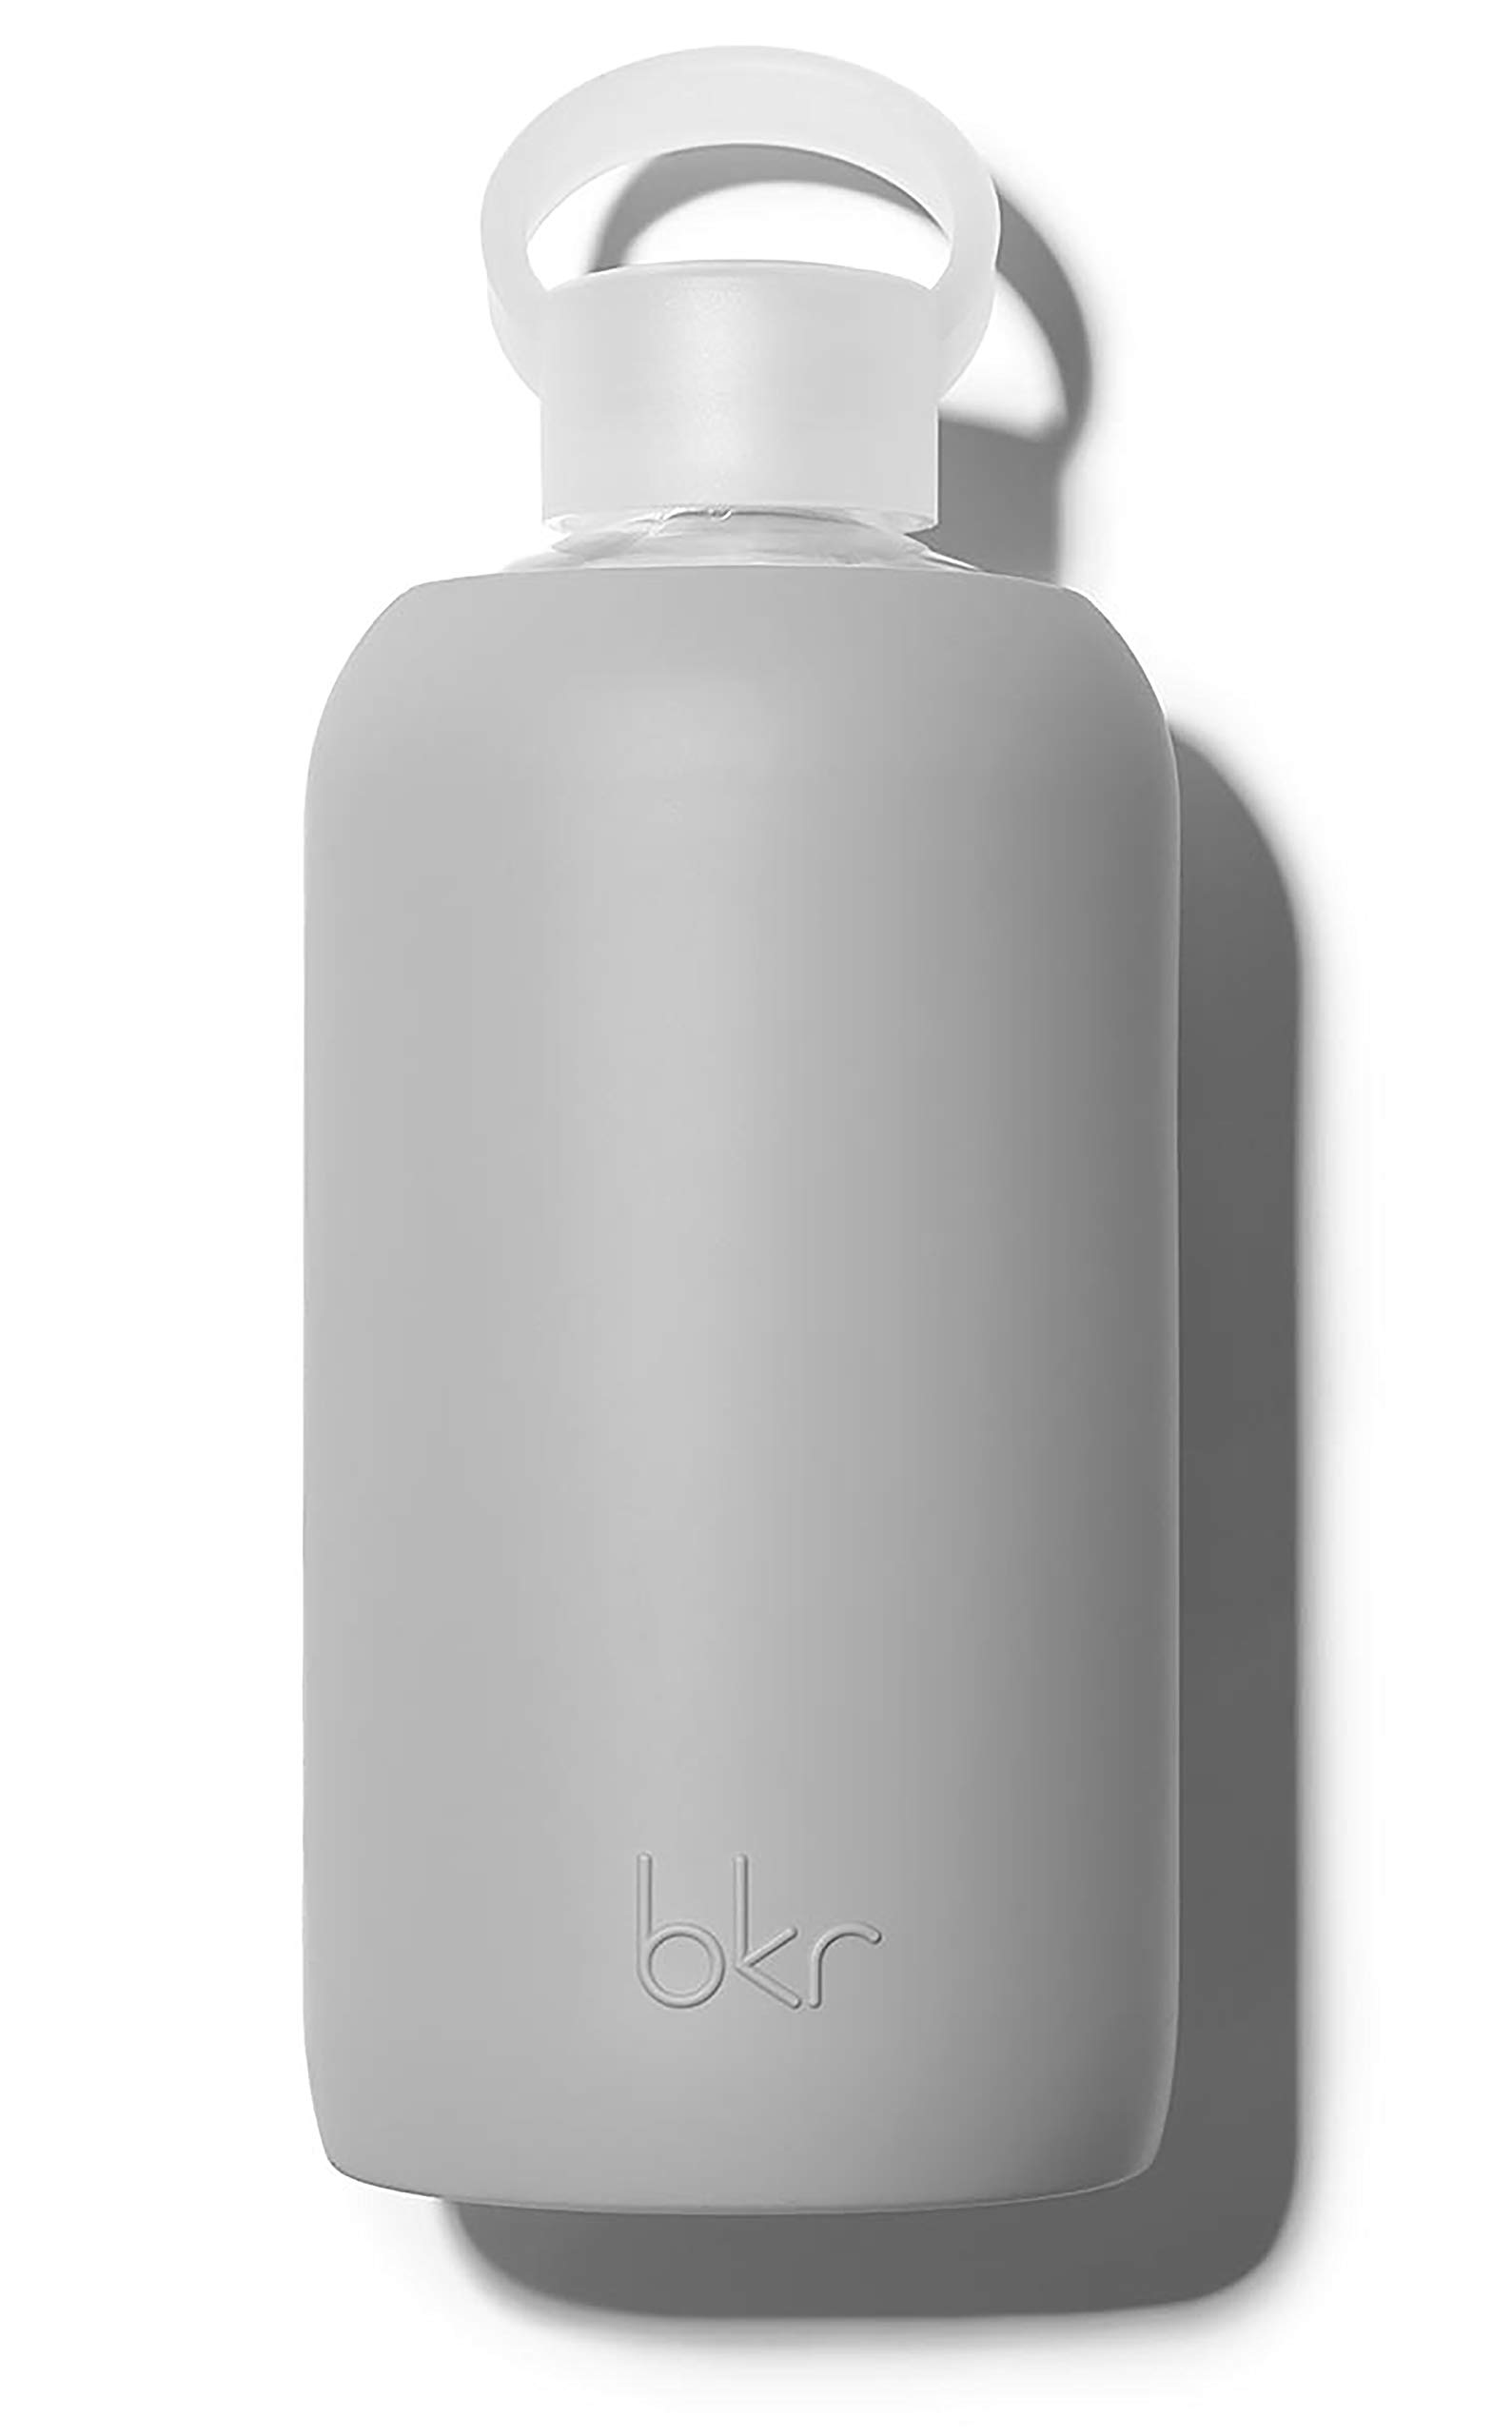 bkr London Glass Water Bottle with Smooth Silicone Sleeve for Travel, Narrow Mouth, BPA-Free & Dishwasher Safe, Opaque Cool Light Grey, 32 oz / 1 Liter